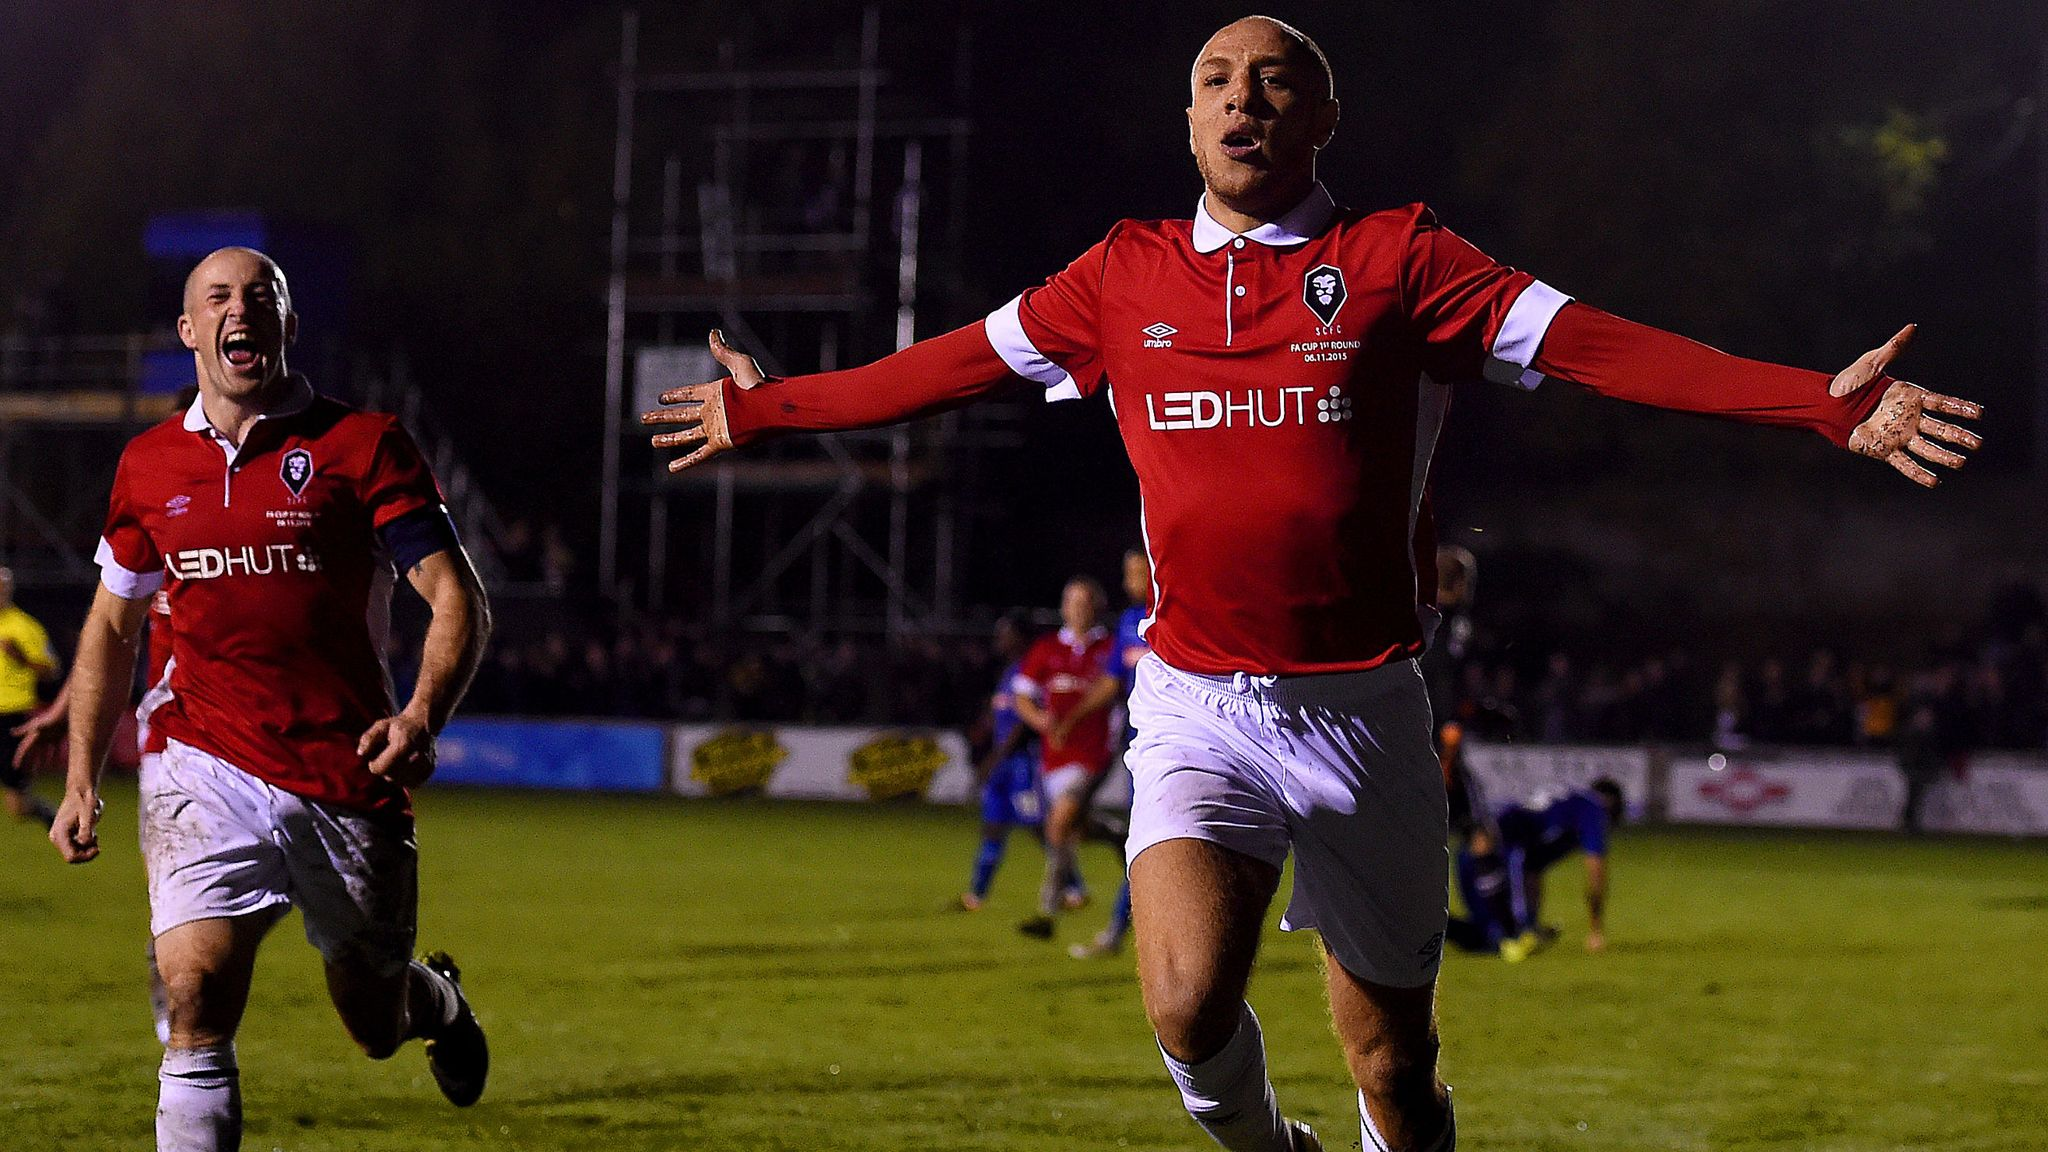 Salford city vs notts county betting on sports spread betting skills for a resume